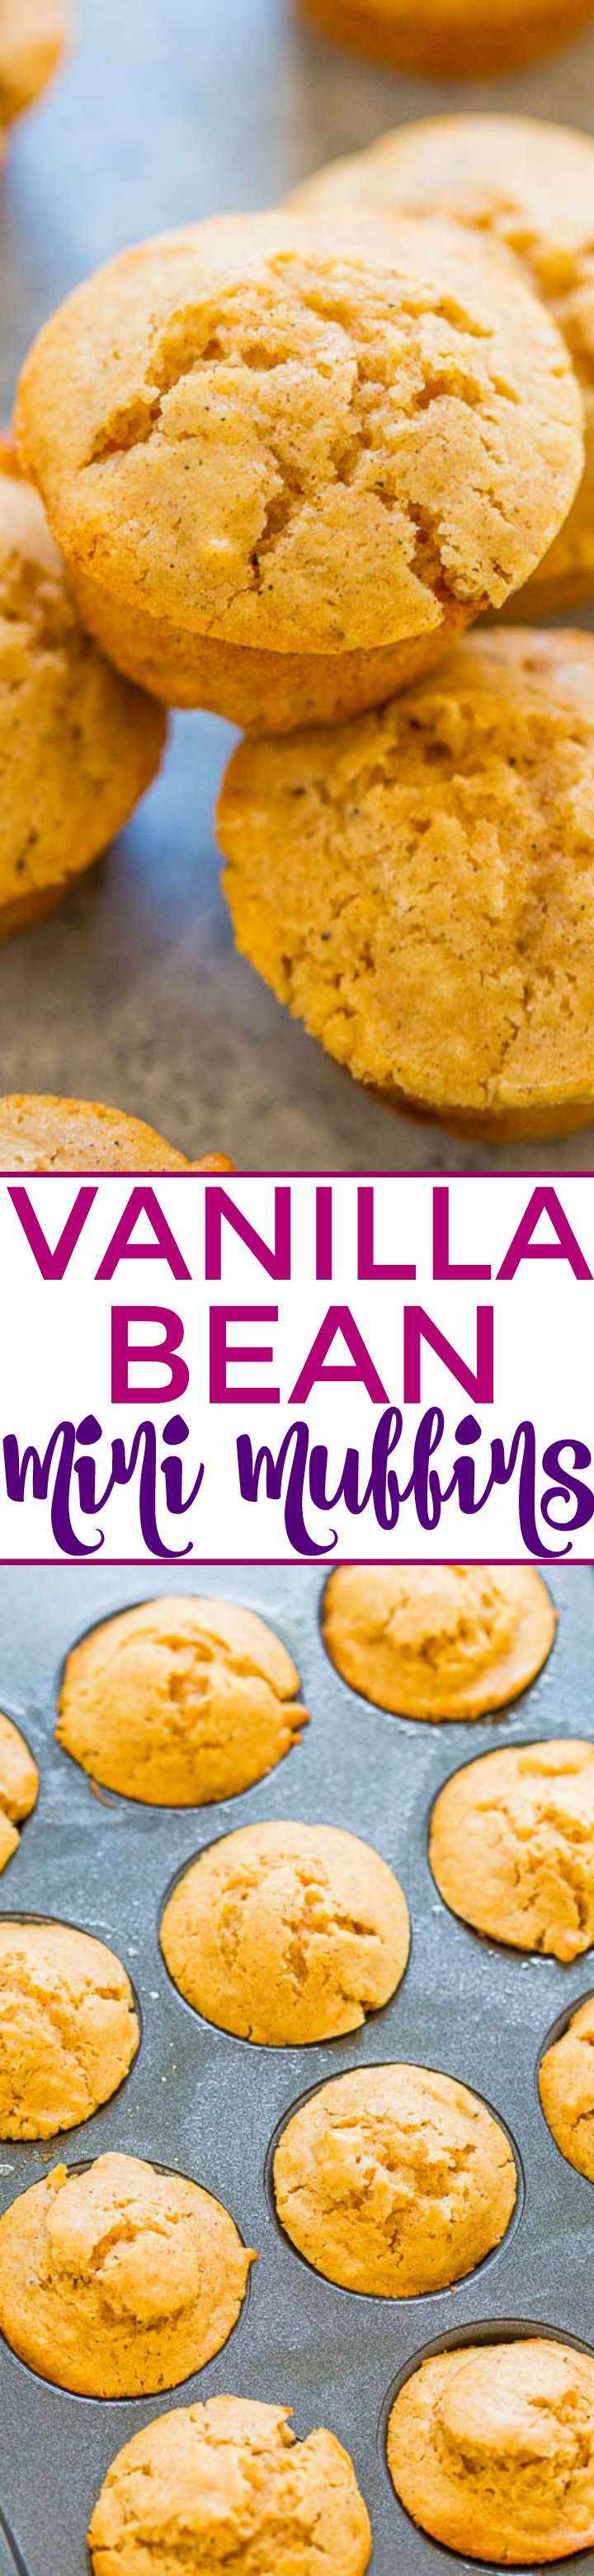 Vanilla Bean Mini Muffins - Fast, EASY, lower sugar, wholesome muffins that are bursting with vanilla bean flavor!! Perfect for breakfast, snacks, and lunch boxes! Mini food always tastes BETTER!!